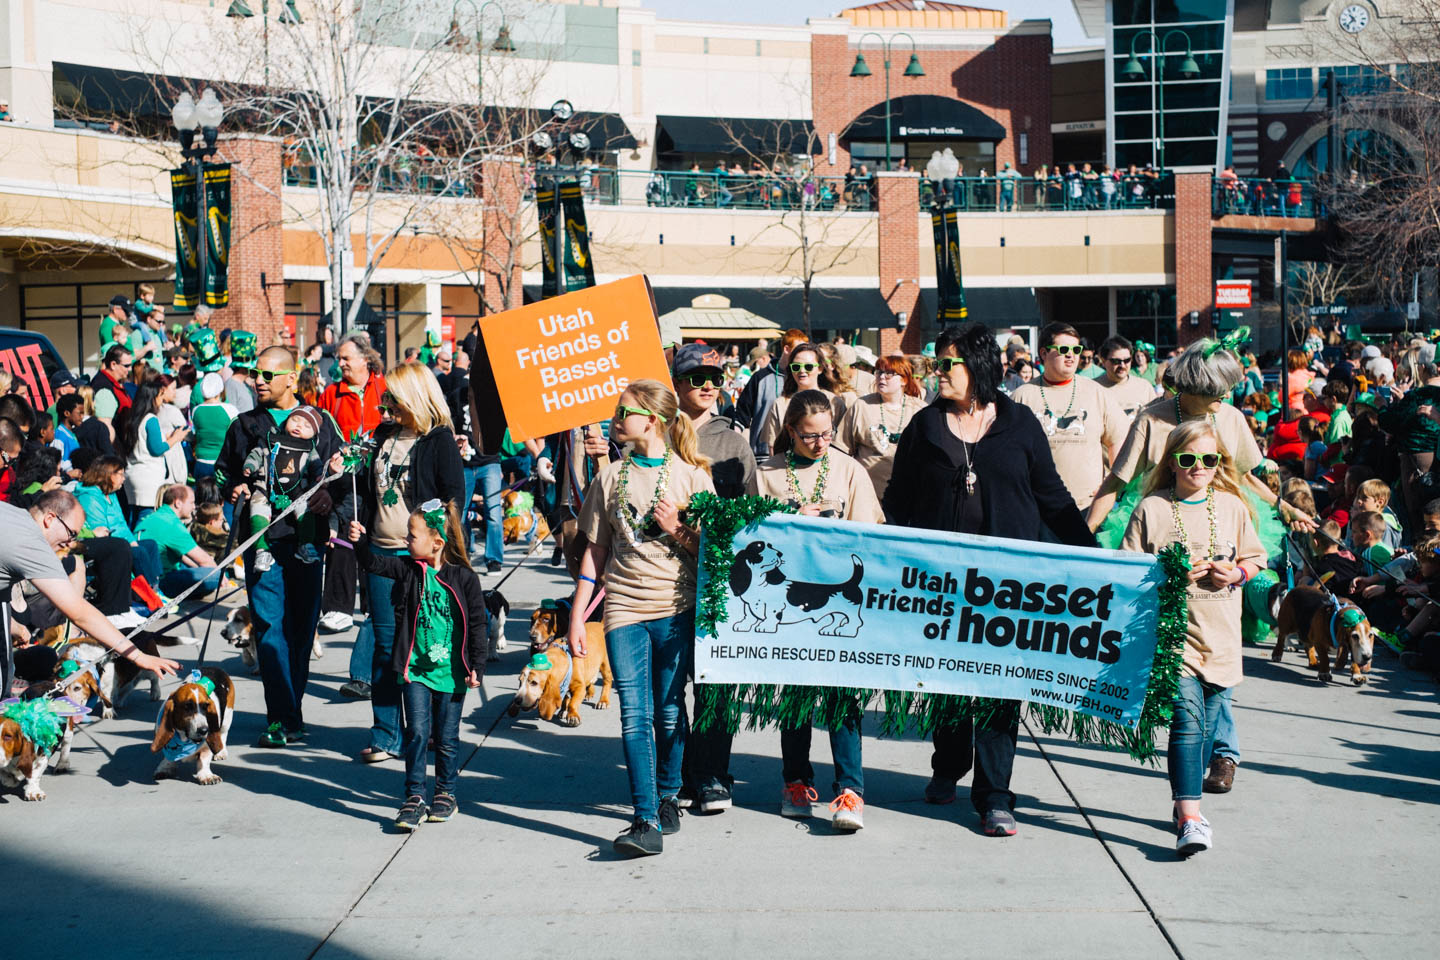 Utah Friends of Basset Hounds and the Wasatch Waddle